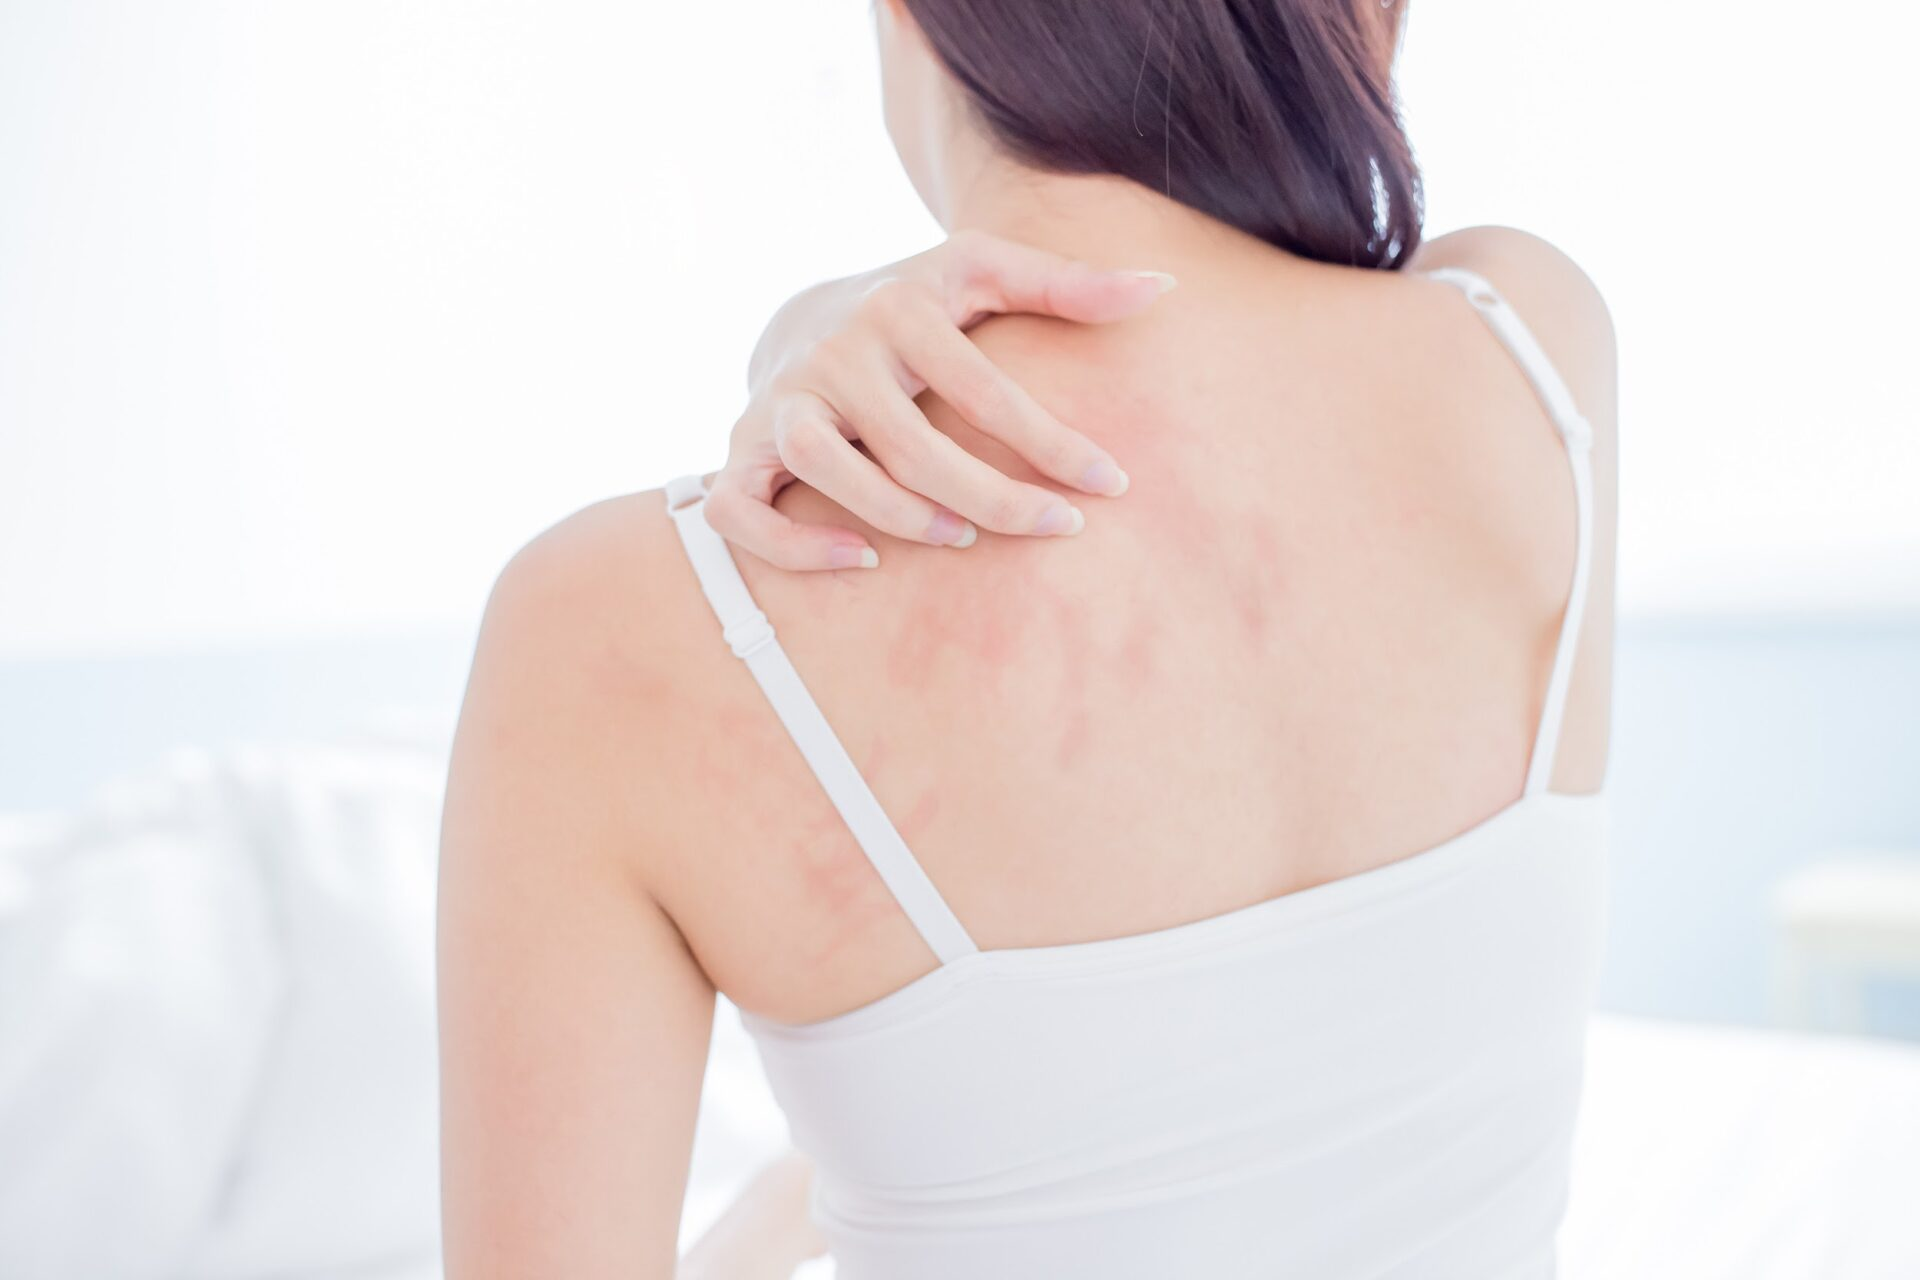 A woman with skin rashes on her back.